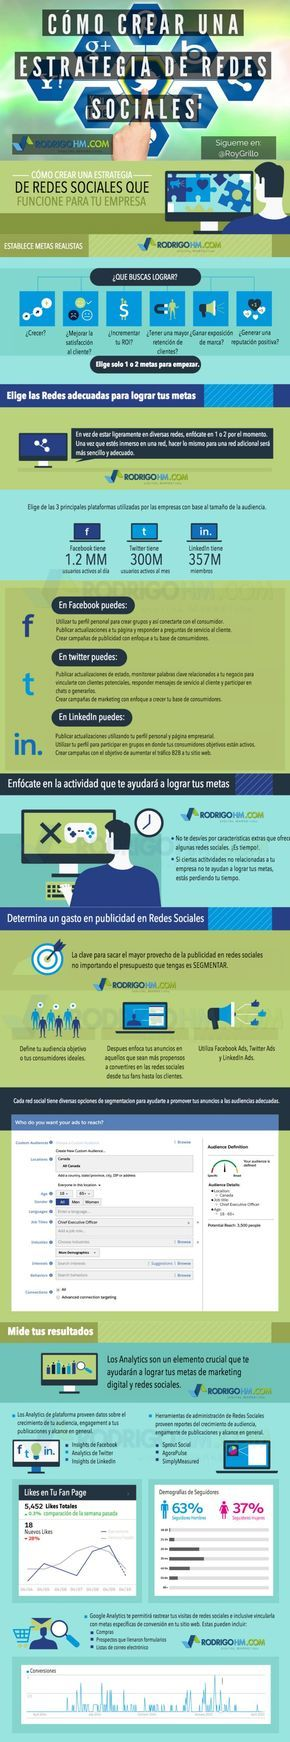 Cómo crear una estrategia de Redes Sociales #infografía - Learn how I made it to 100K in one months with e-commerce